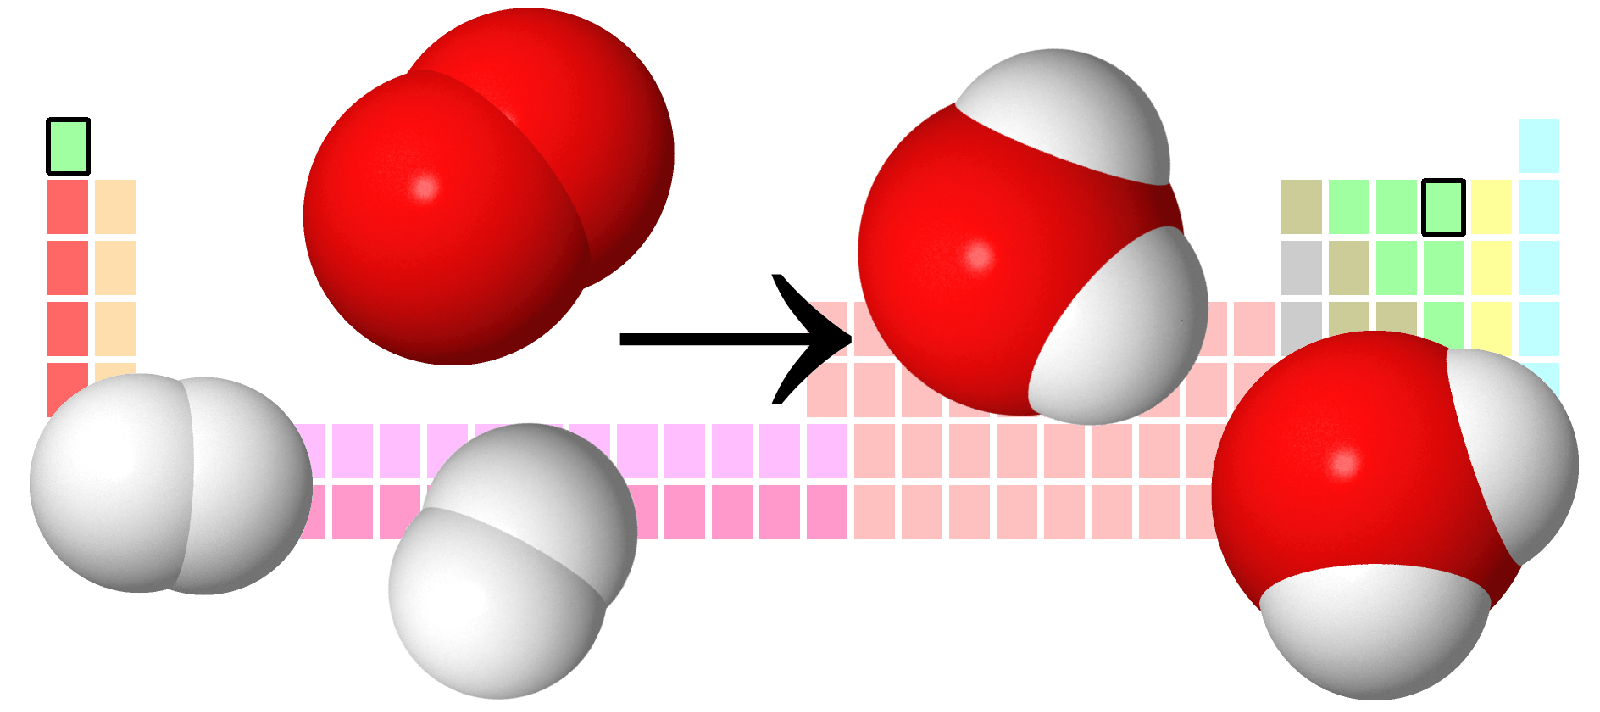 Two molecules of dihydrogen combine with one molecule of dioxygen to form two molecules of water